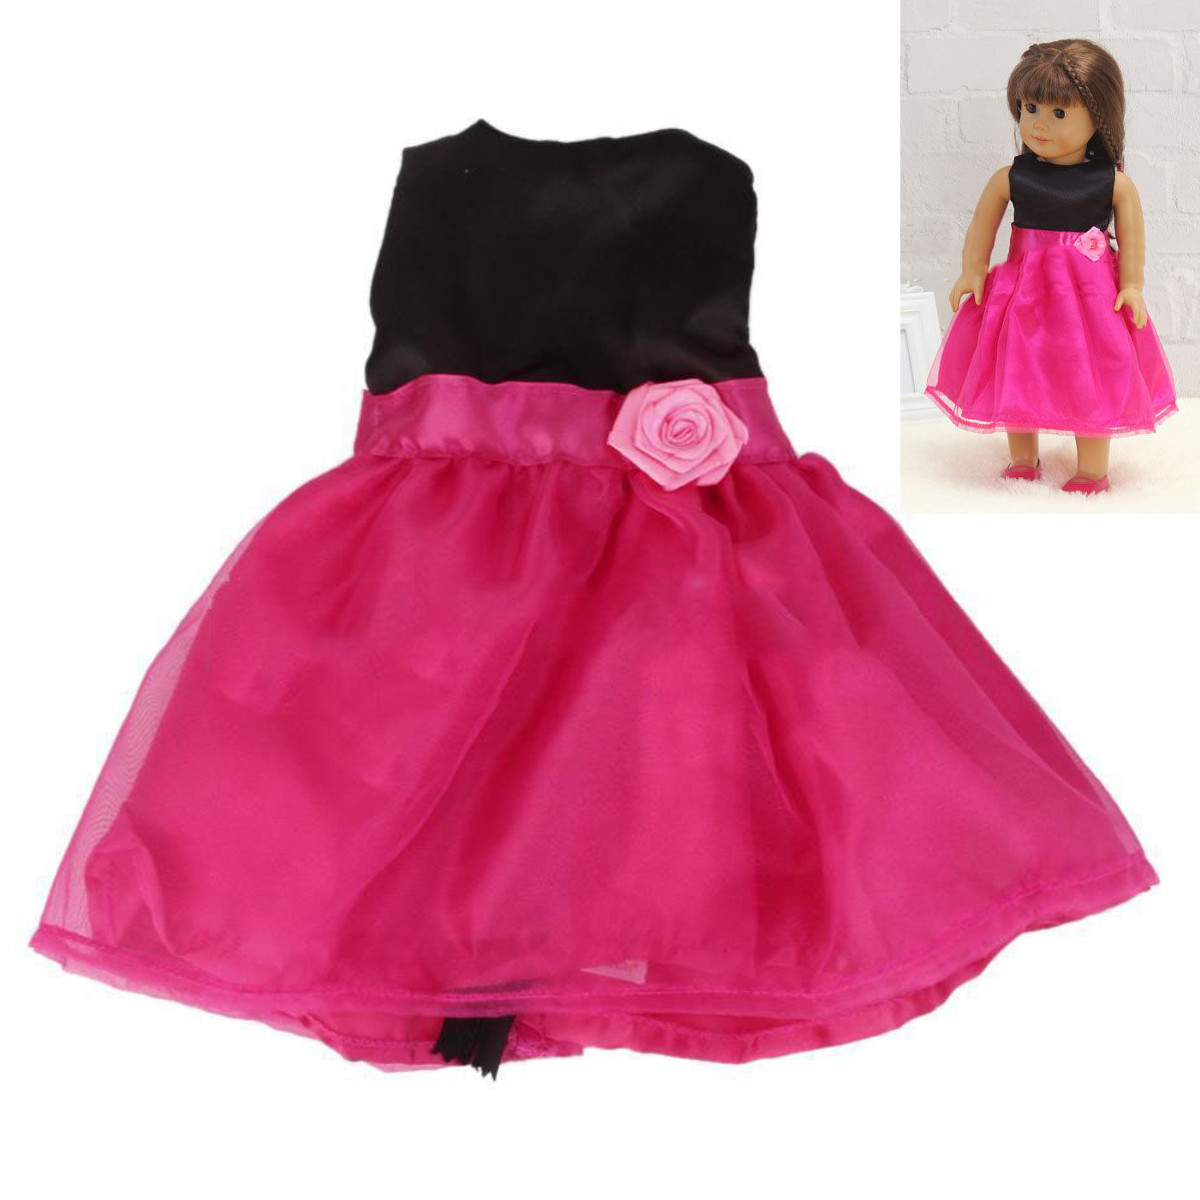 Handmade Rose Red Party Dress Skirt Clothes Gift Fits 18'' American Girl Doll SPECIAL TODAY !